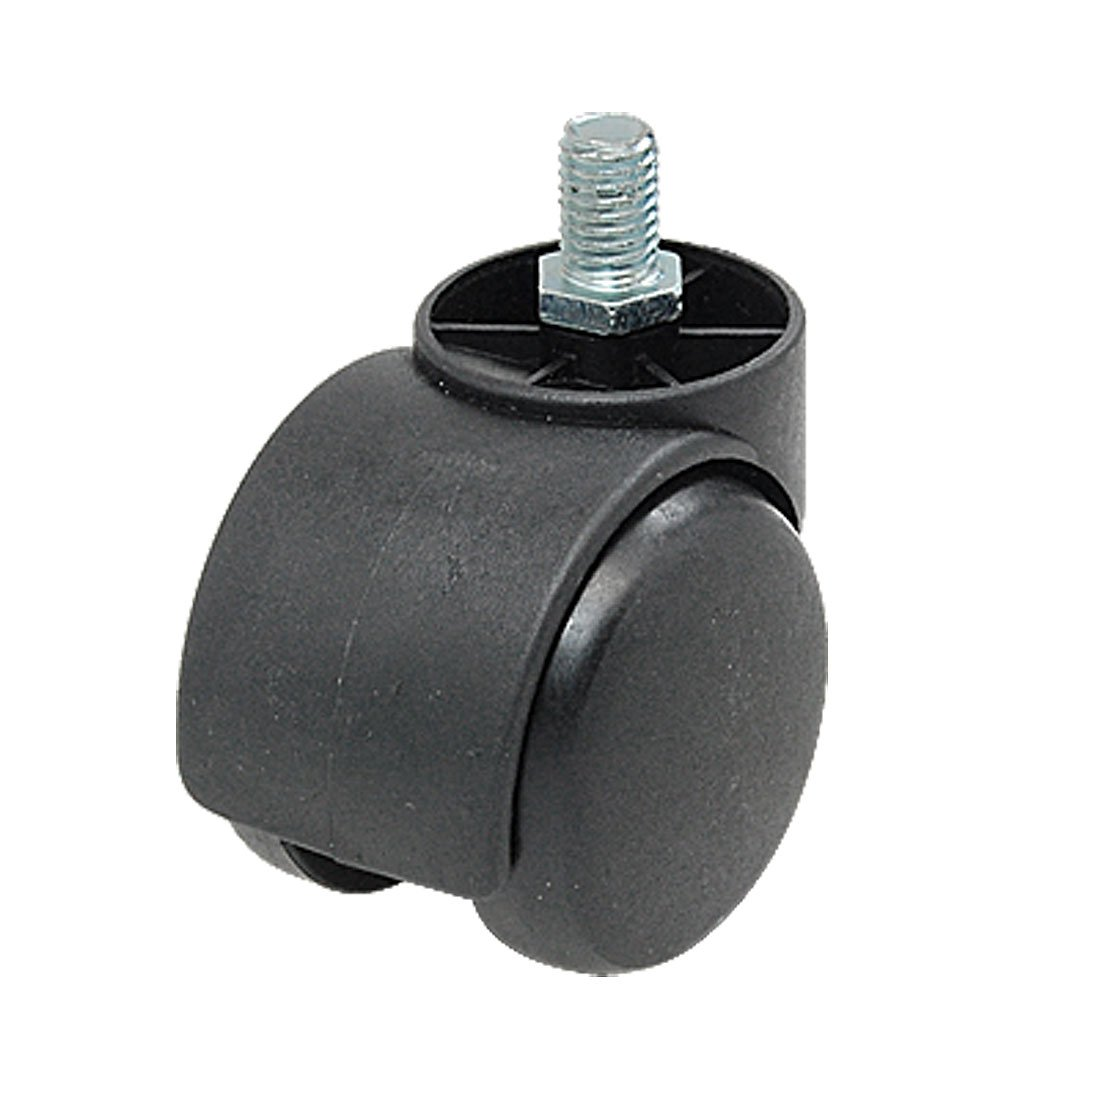 chair casters threaded stem cover hire stratford upon avon 2016 new connector twin wheel black